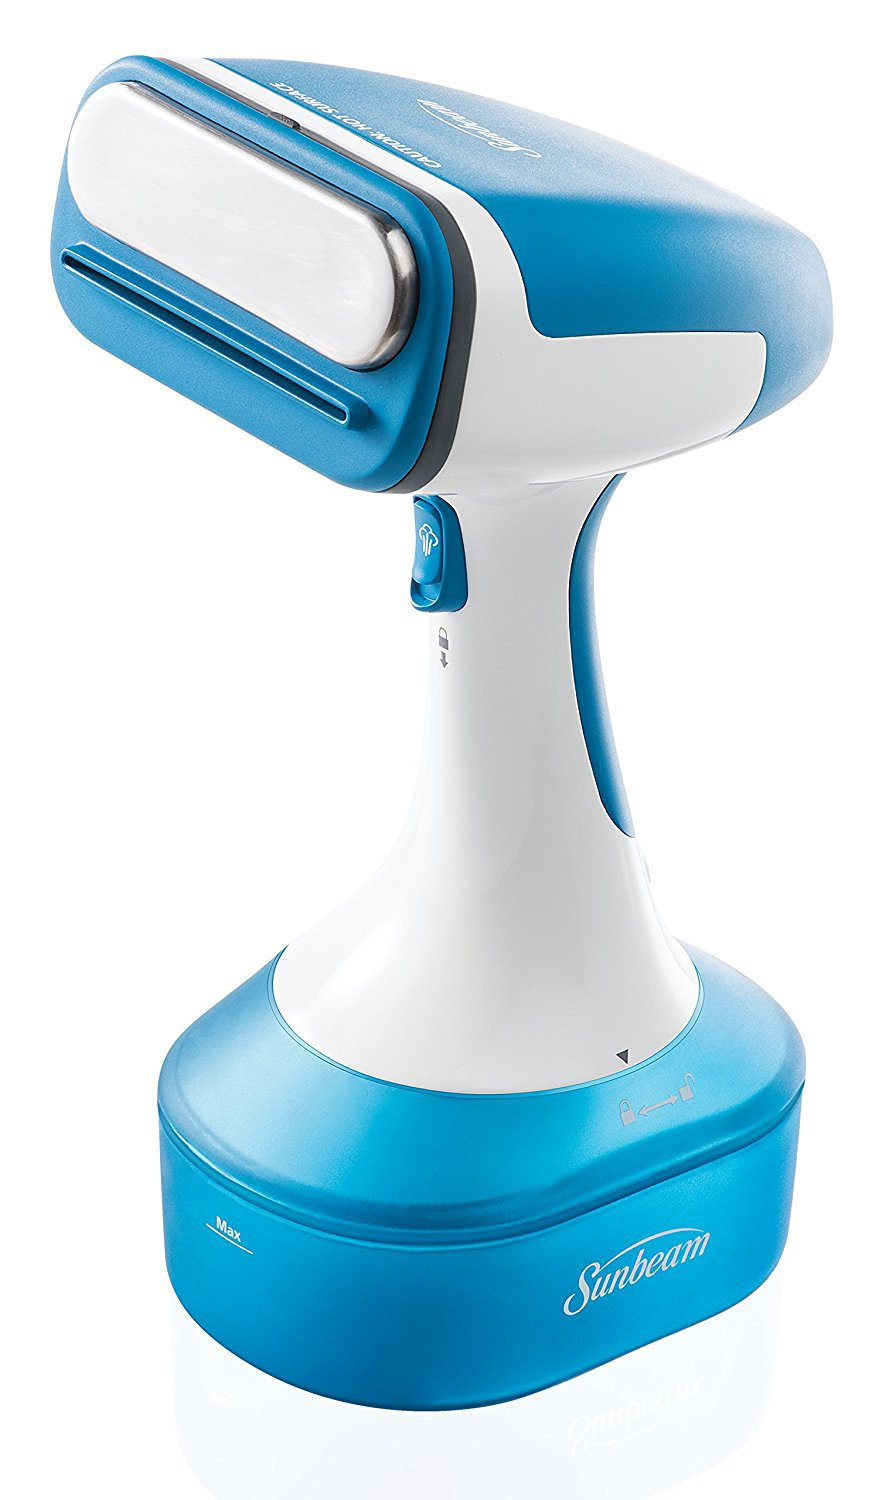 Best Travel Garment Steamer